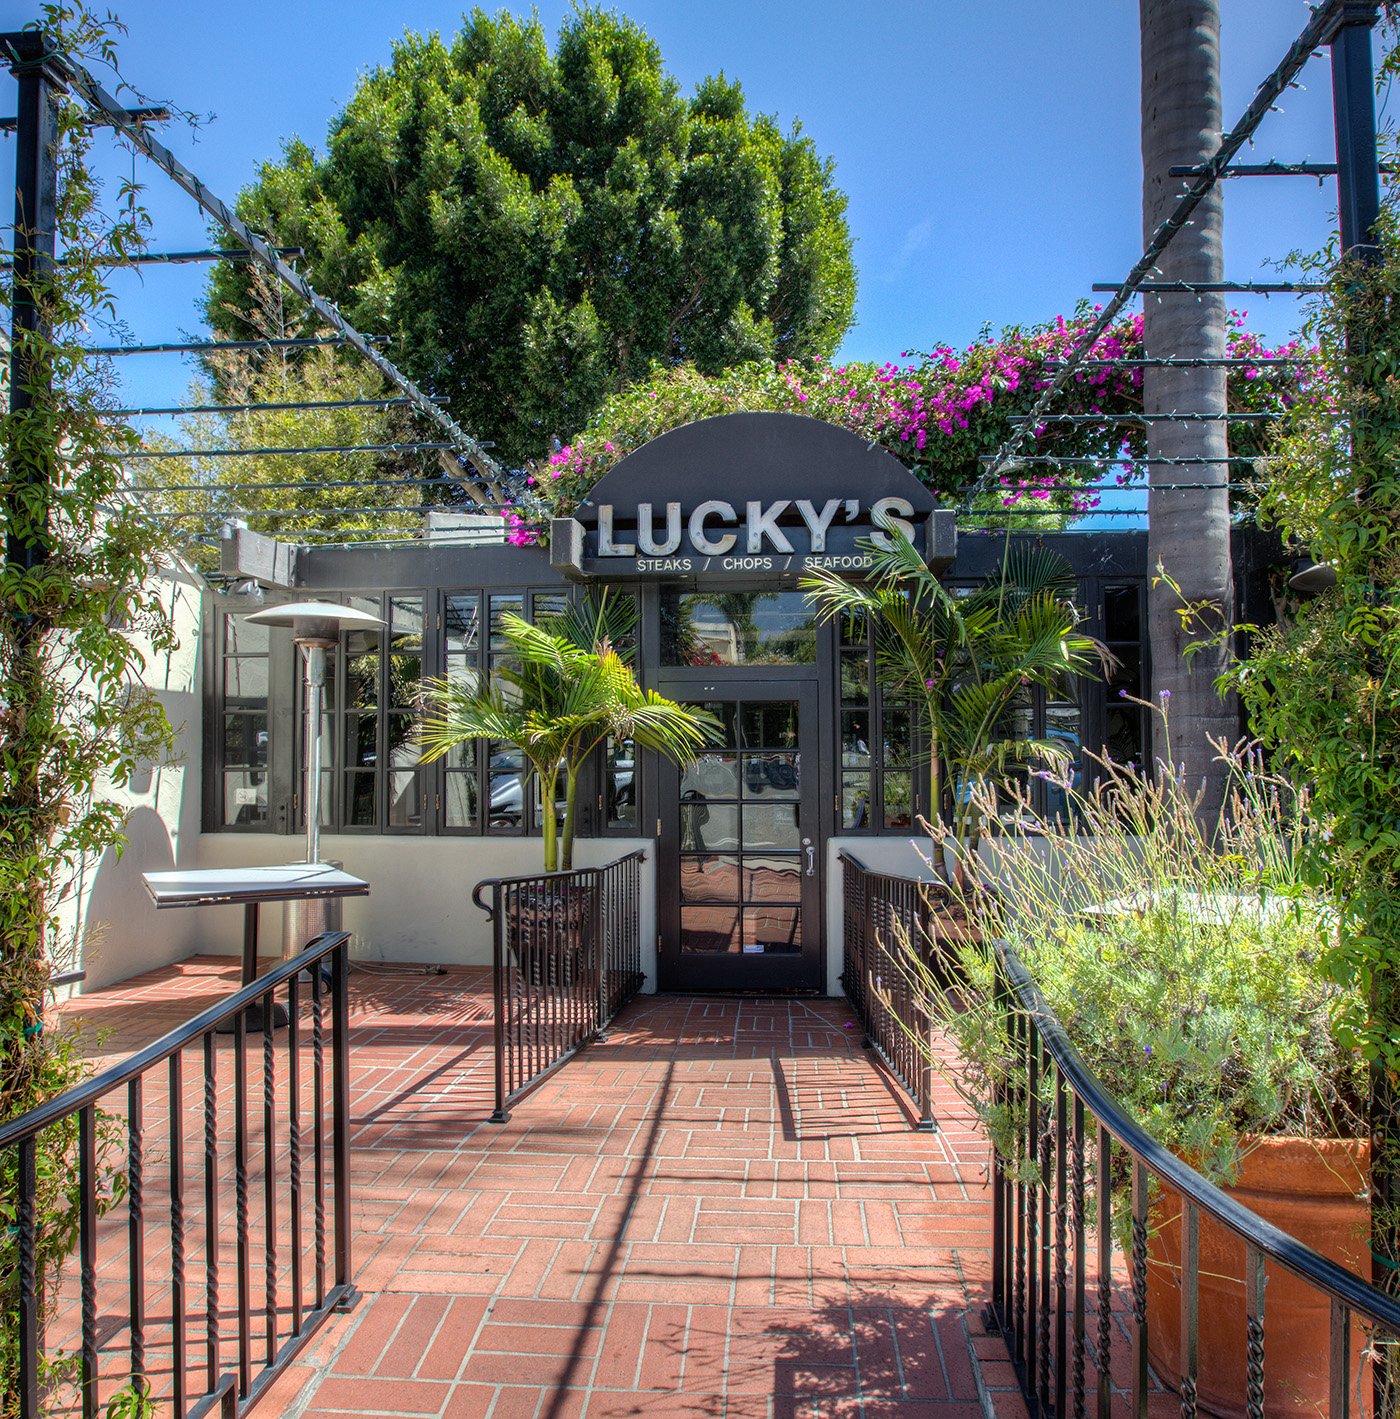 Nearby Lucky's Restaurant